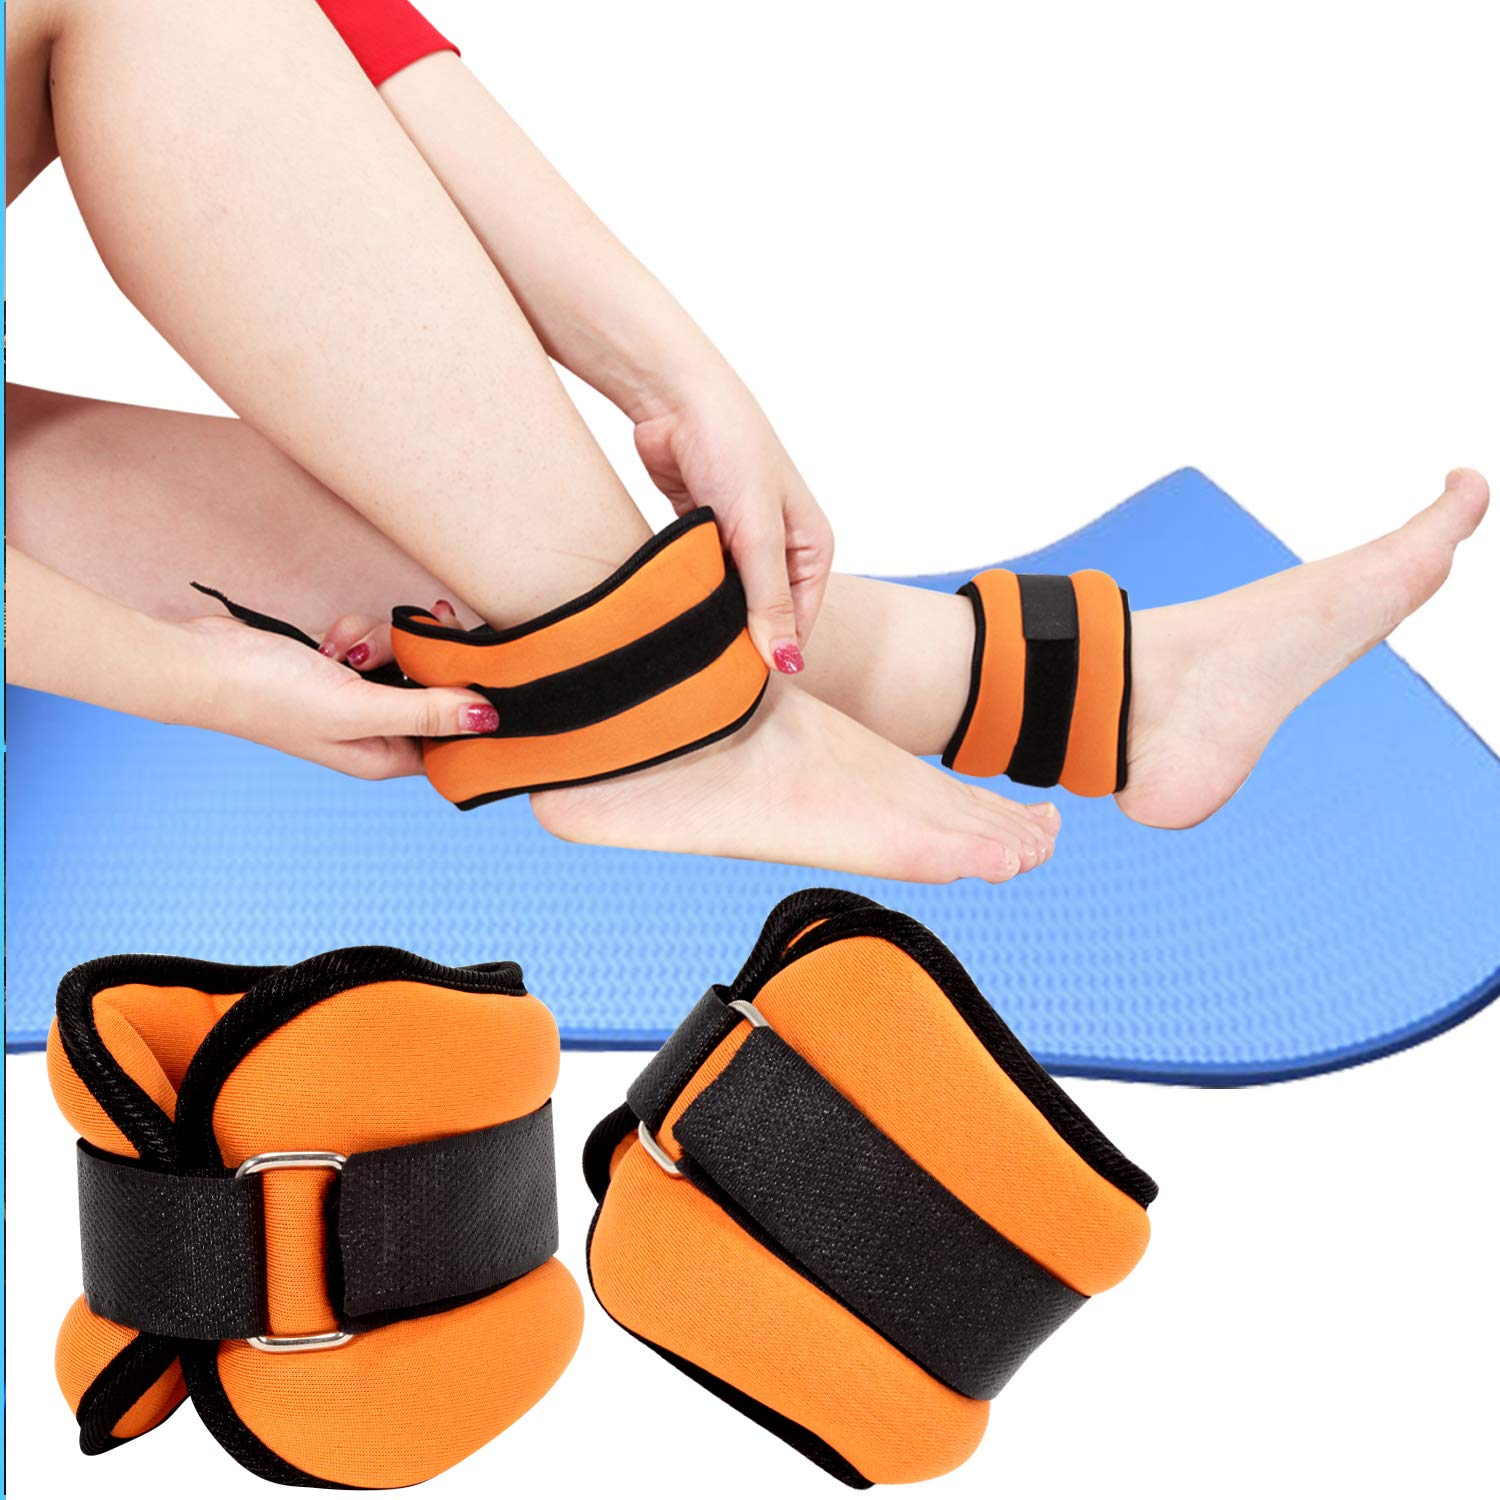 Amazon.com : Yetudo Durable Ankle/Wrist Weights (1 Pair, 2lb) for Women Men and Kids, Home Workout Ankle Strengthening & Toning Workouts for Fitness, ...